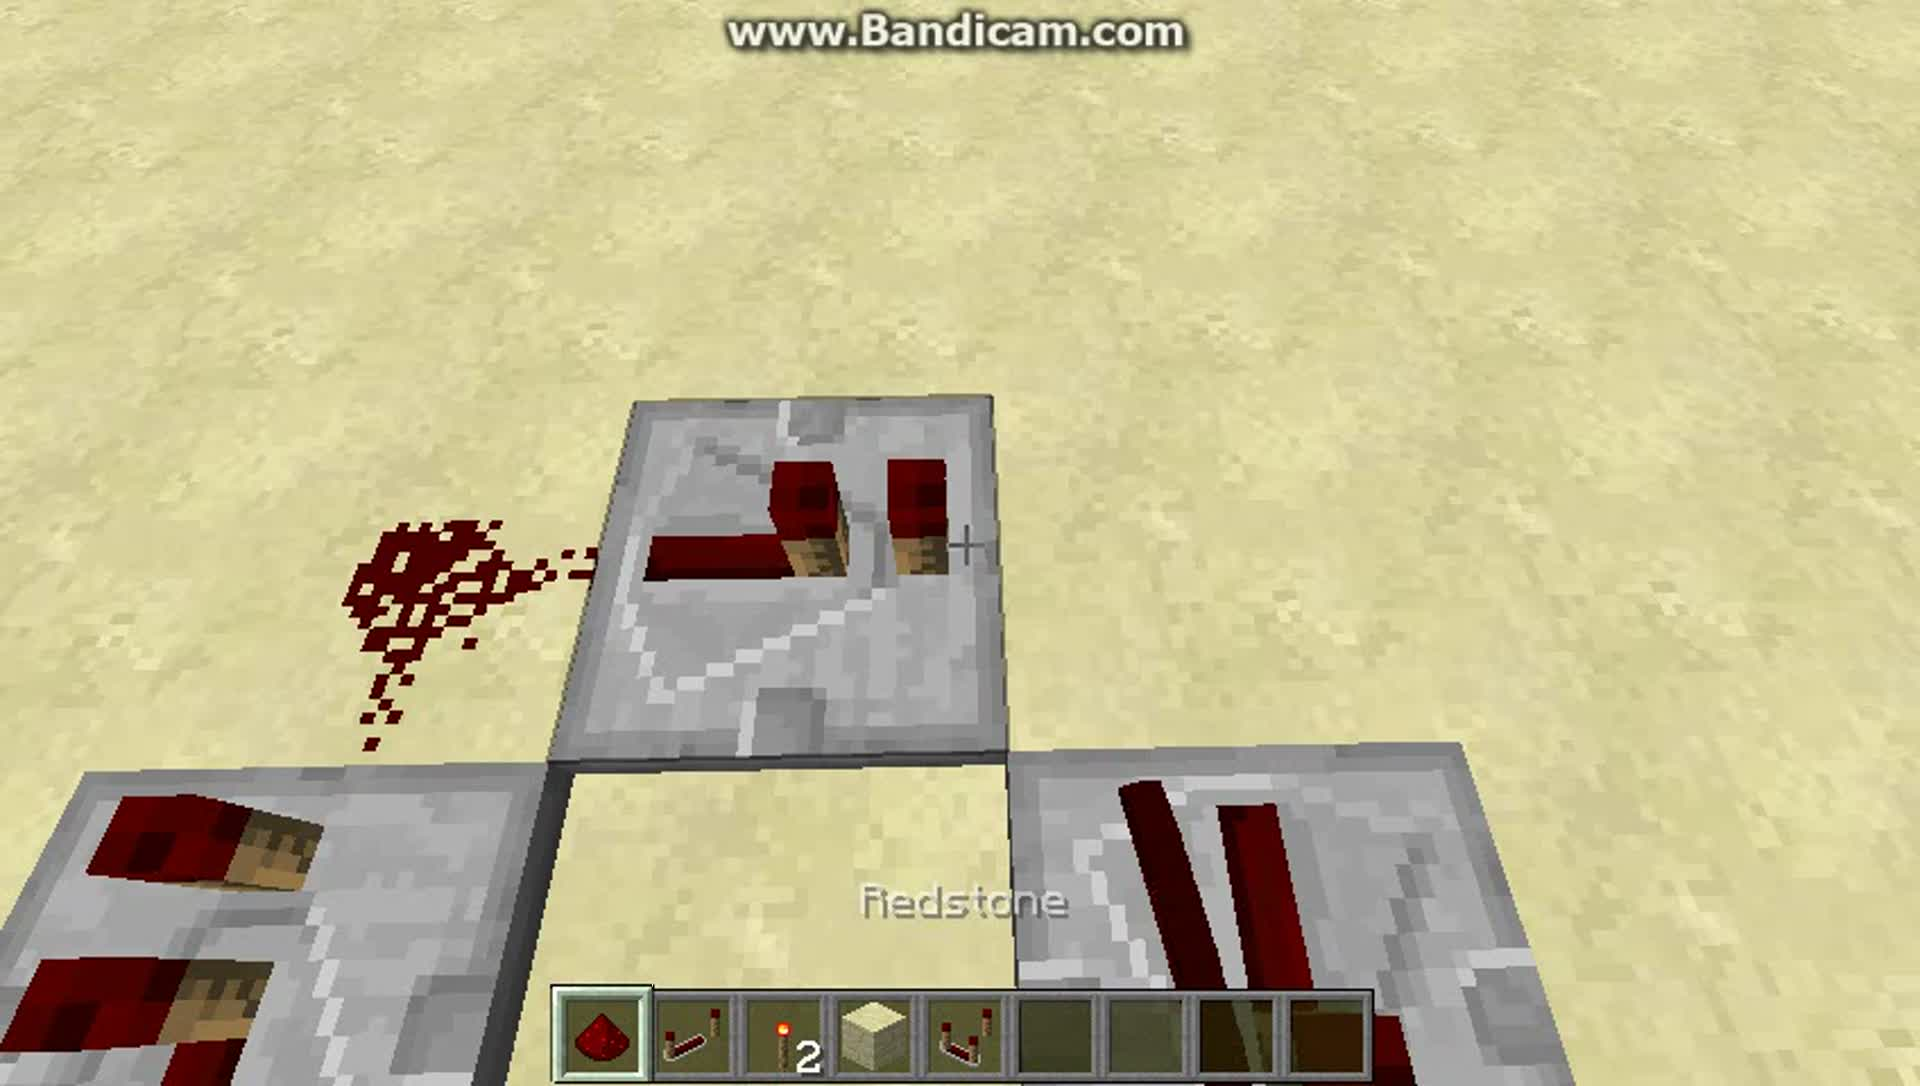 How to Make a Slow Redstone Clock in Minecraft - DIY